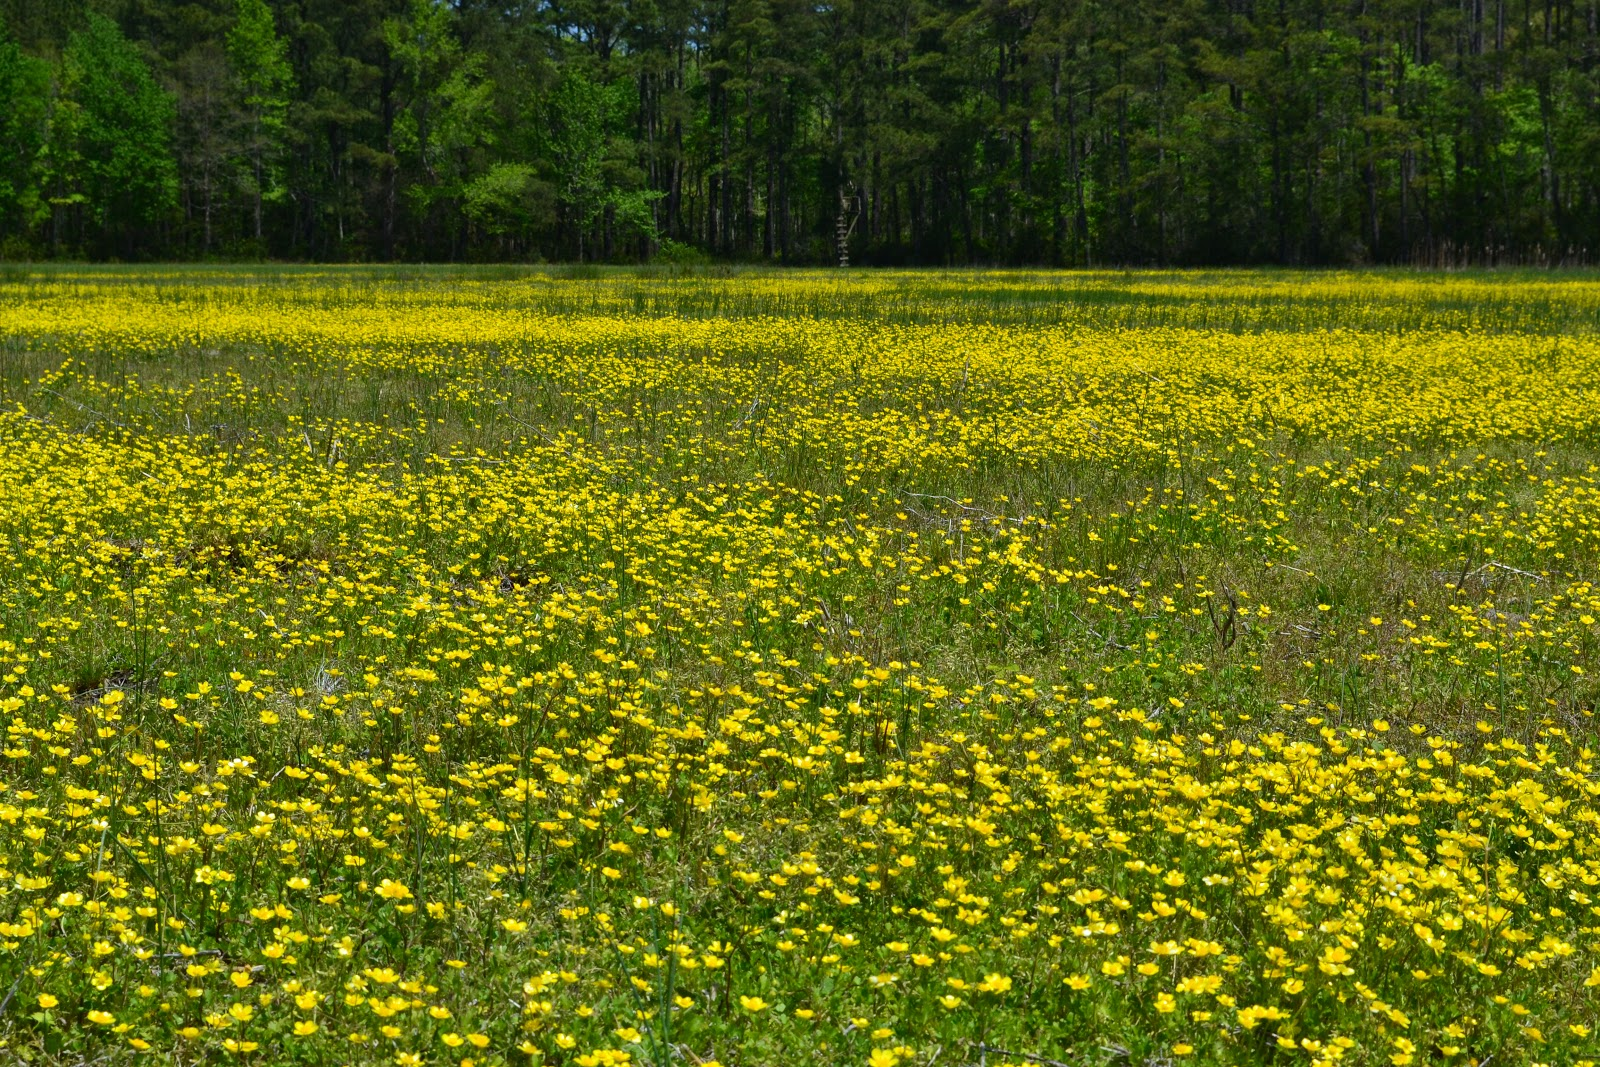 This Area Is A Great Place To Live In The Spring If Ones Favorite Color Yellow Many Types Of Wildflowers Are Blooming En Masse Along